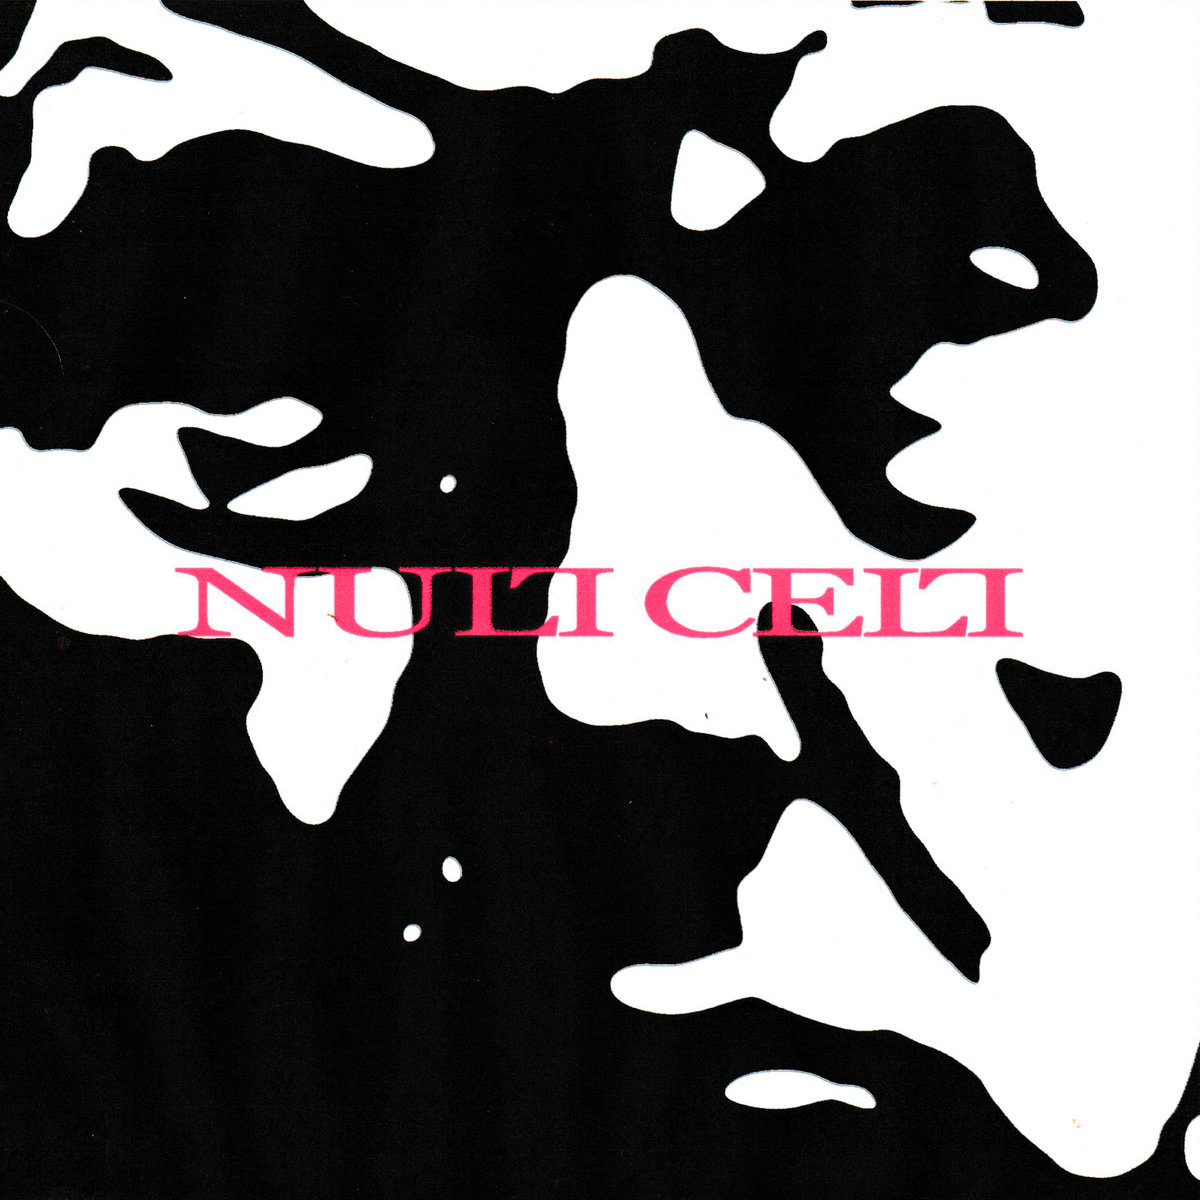 They Lie To Us (Redux Mix Feat. SPANKTHENUN) by Null Cell